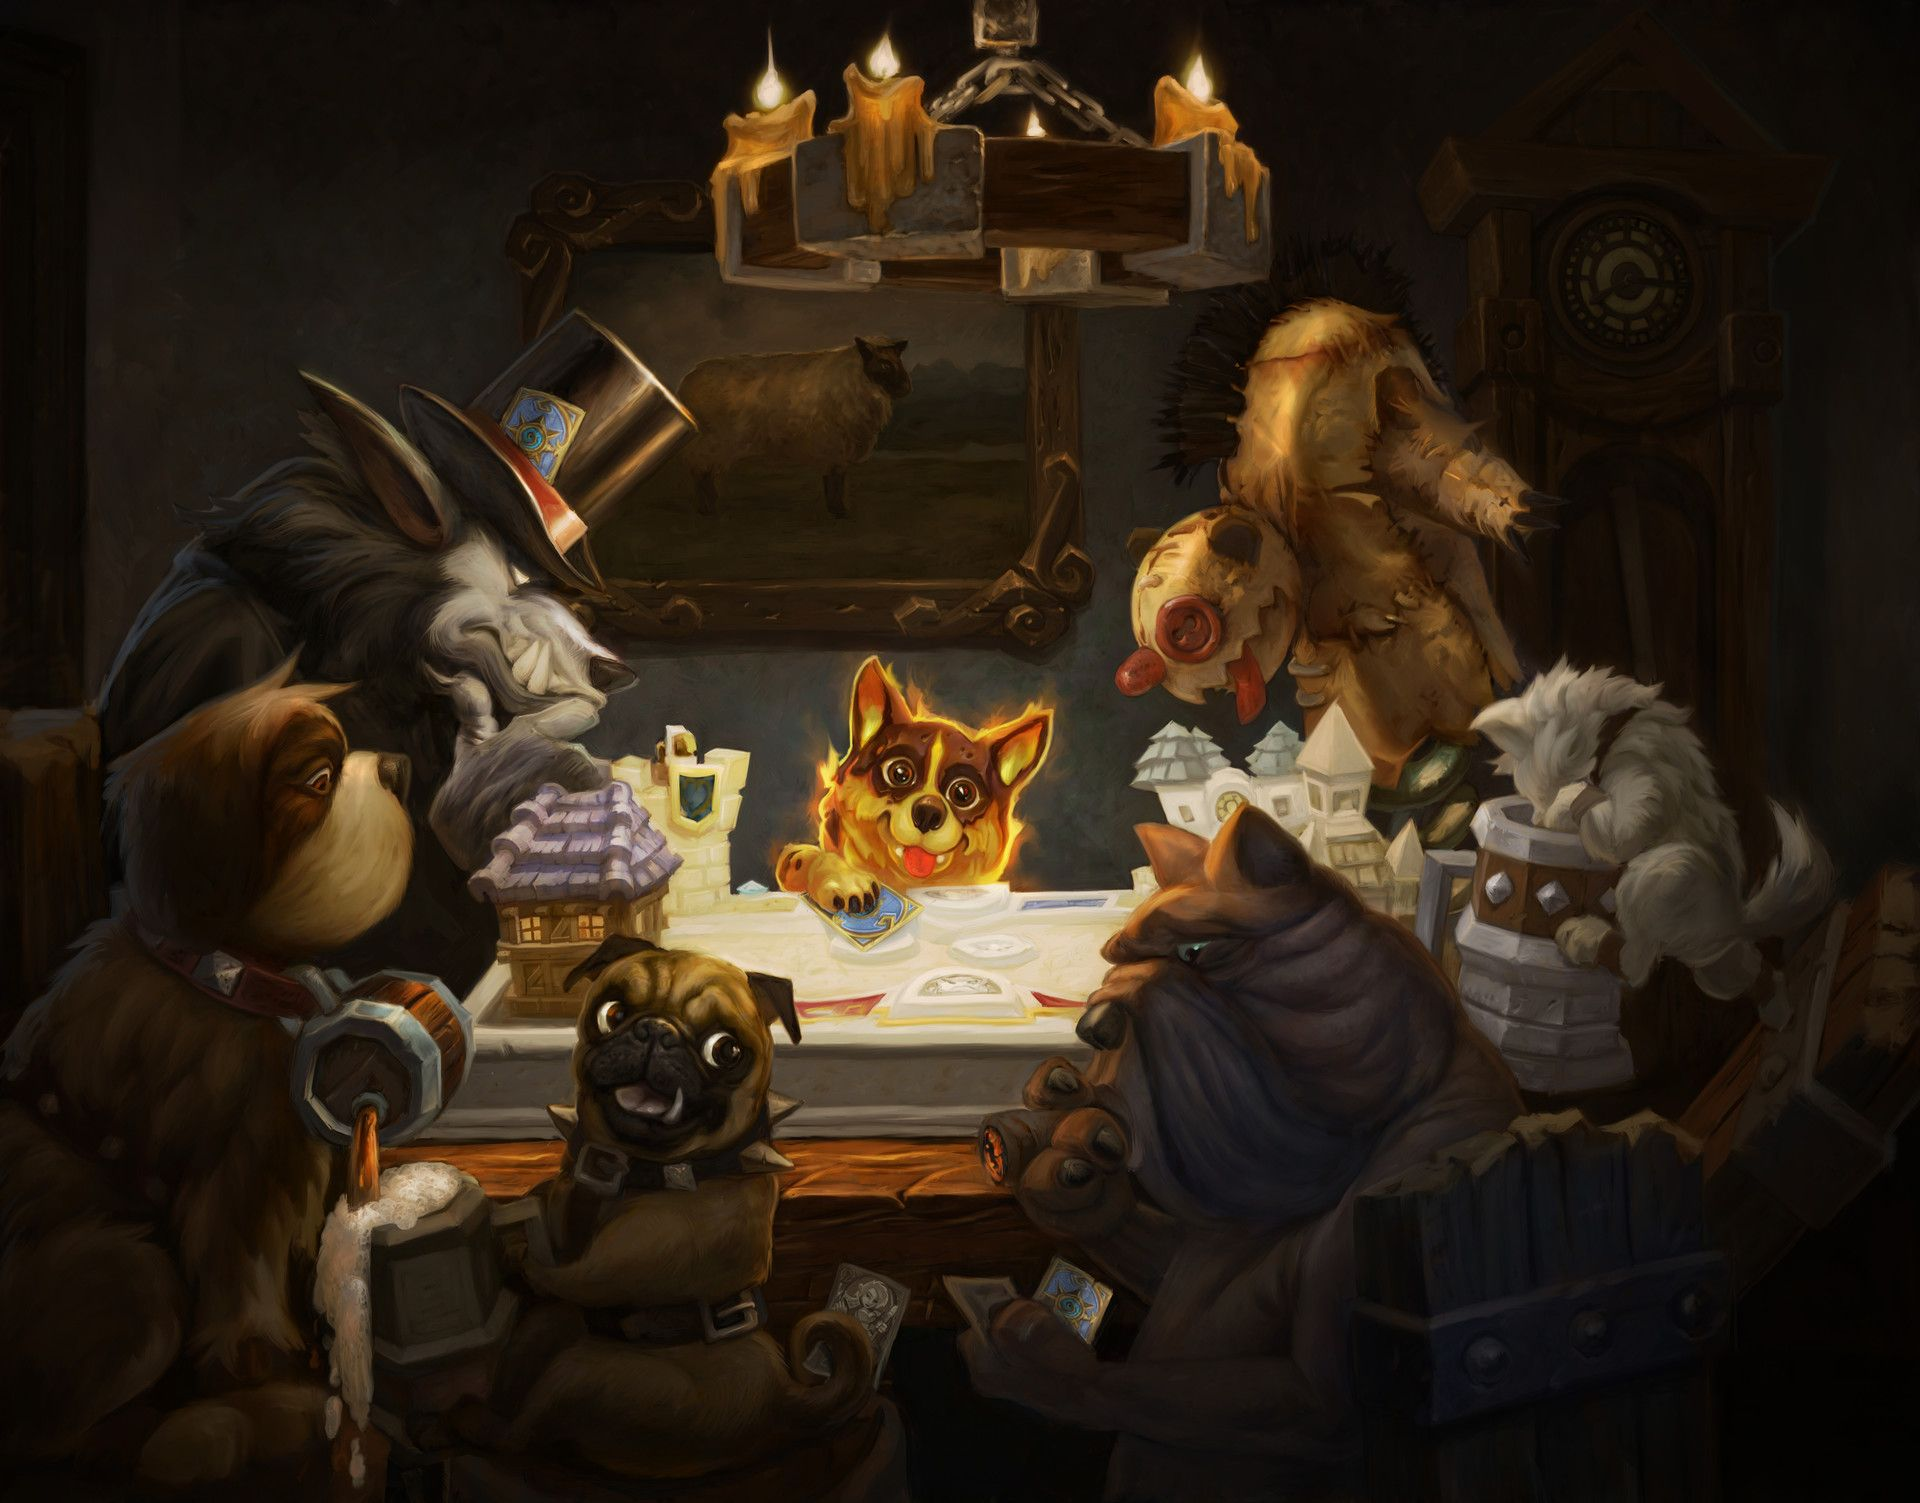 ArtStation - Dogs Playing Hearthstone, Eric Browning